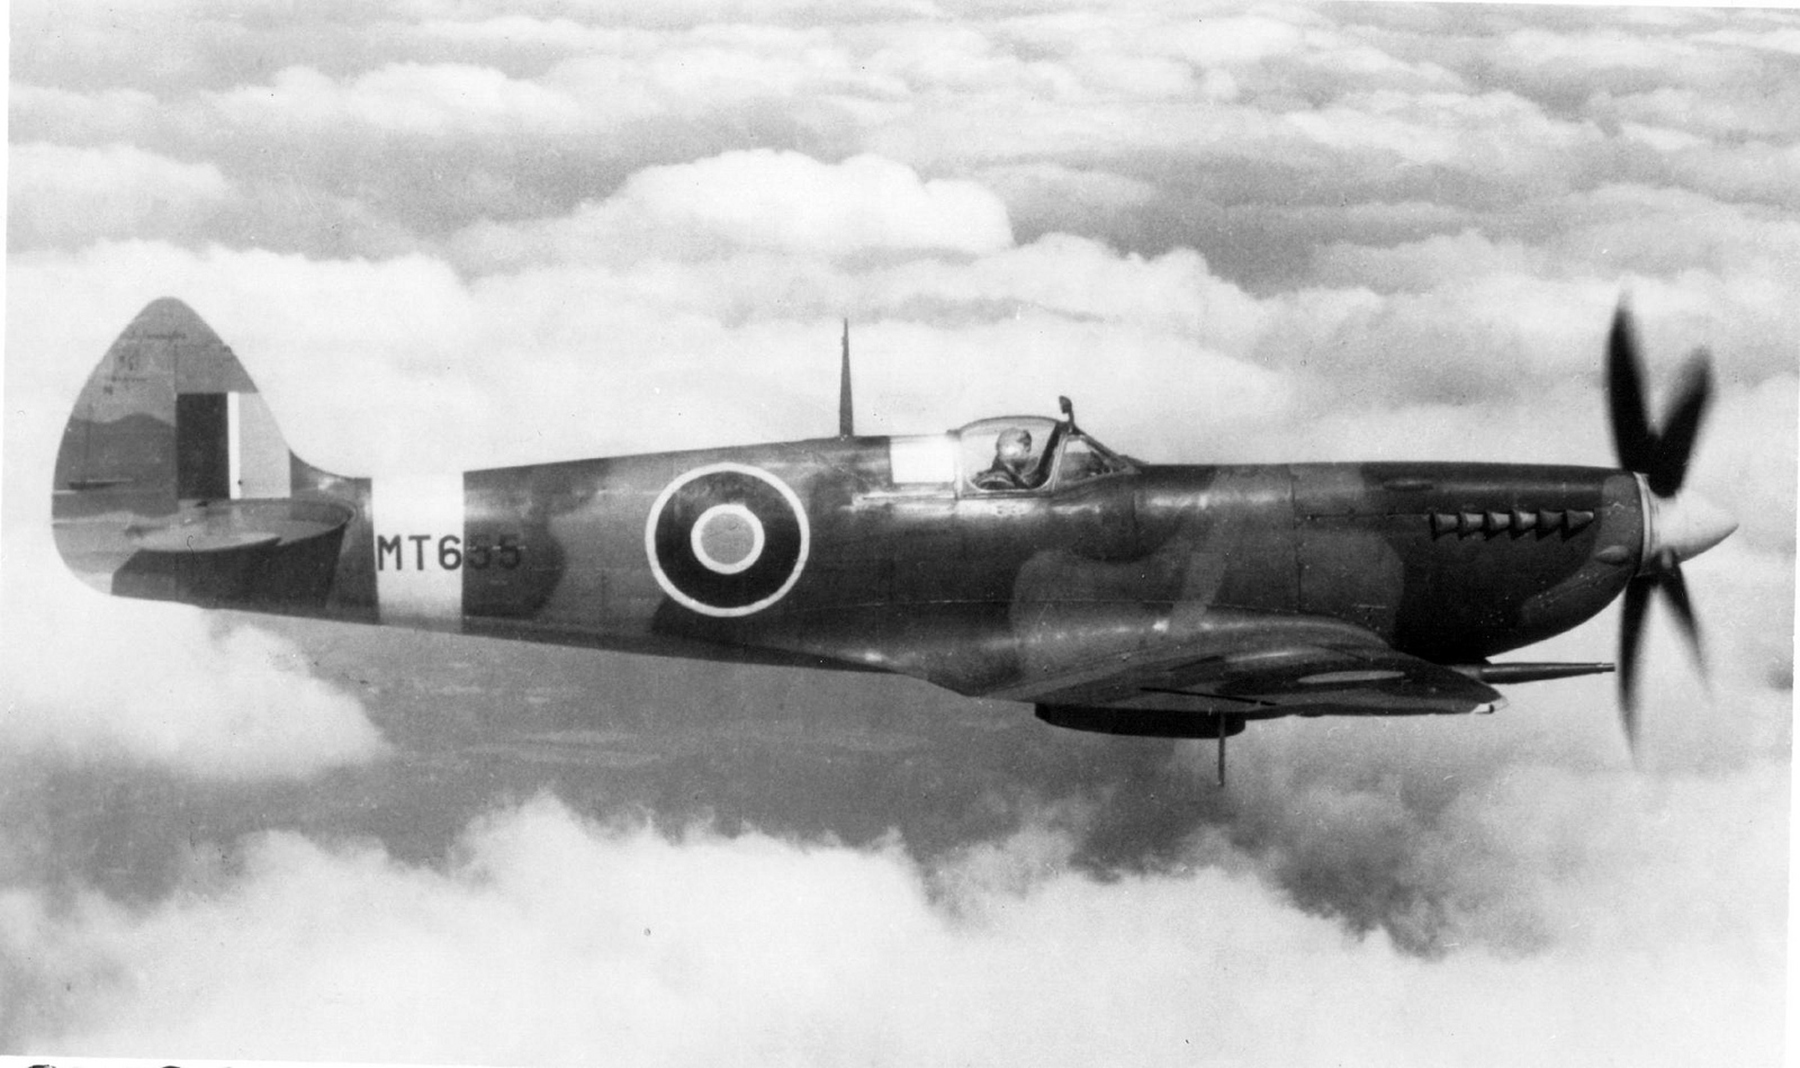 Spitfire MkVIII MT655 later as RAAF as A58 520 01